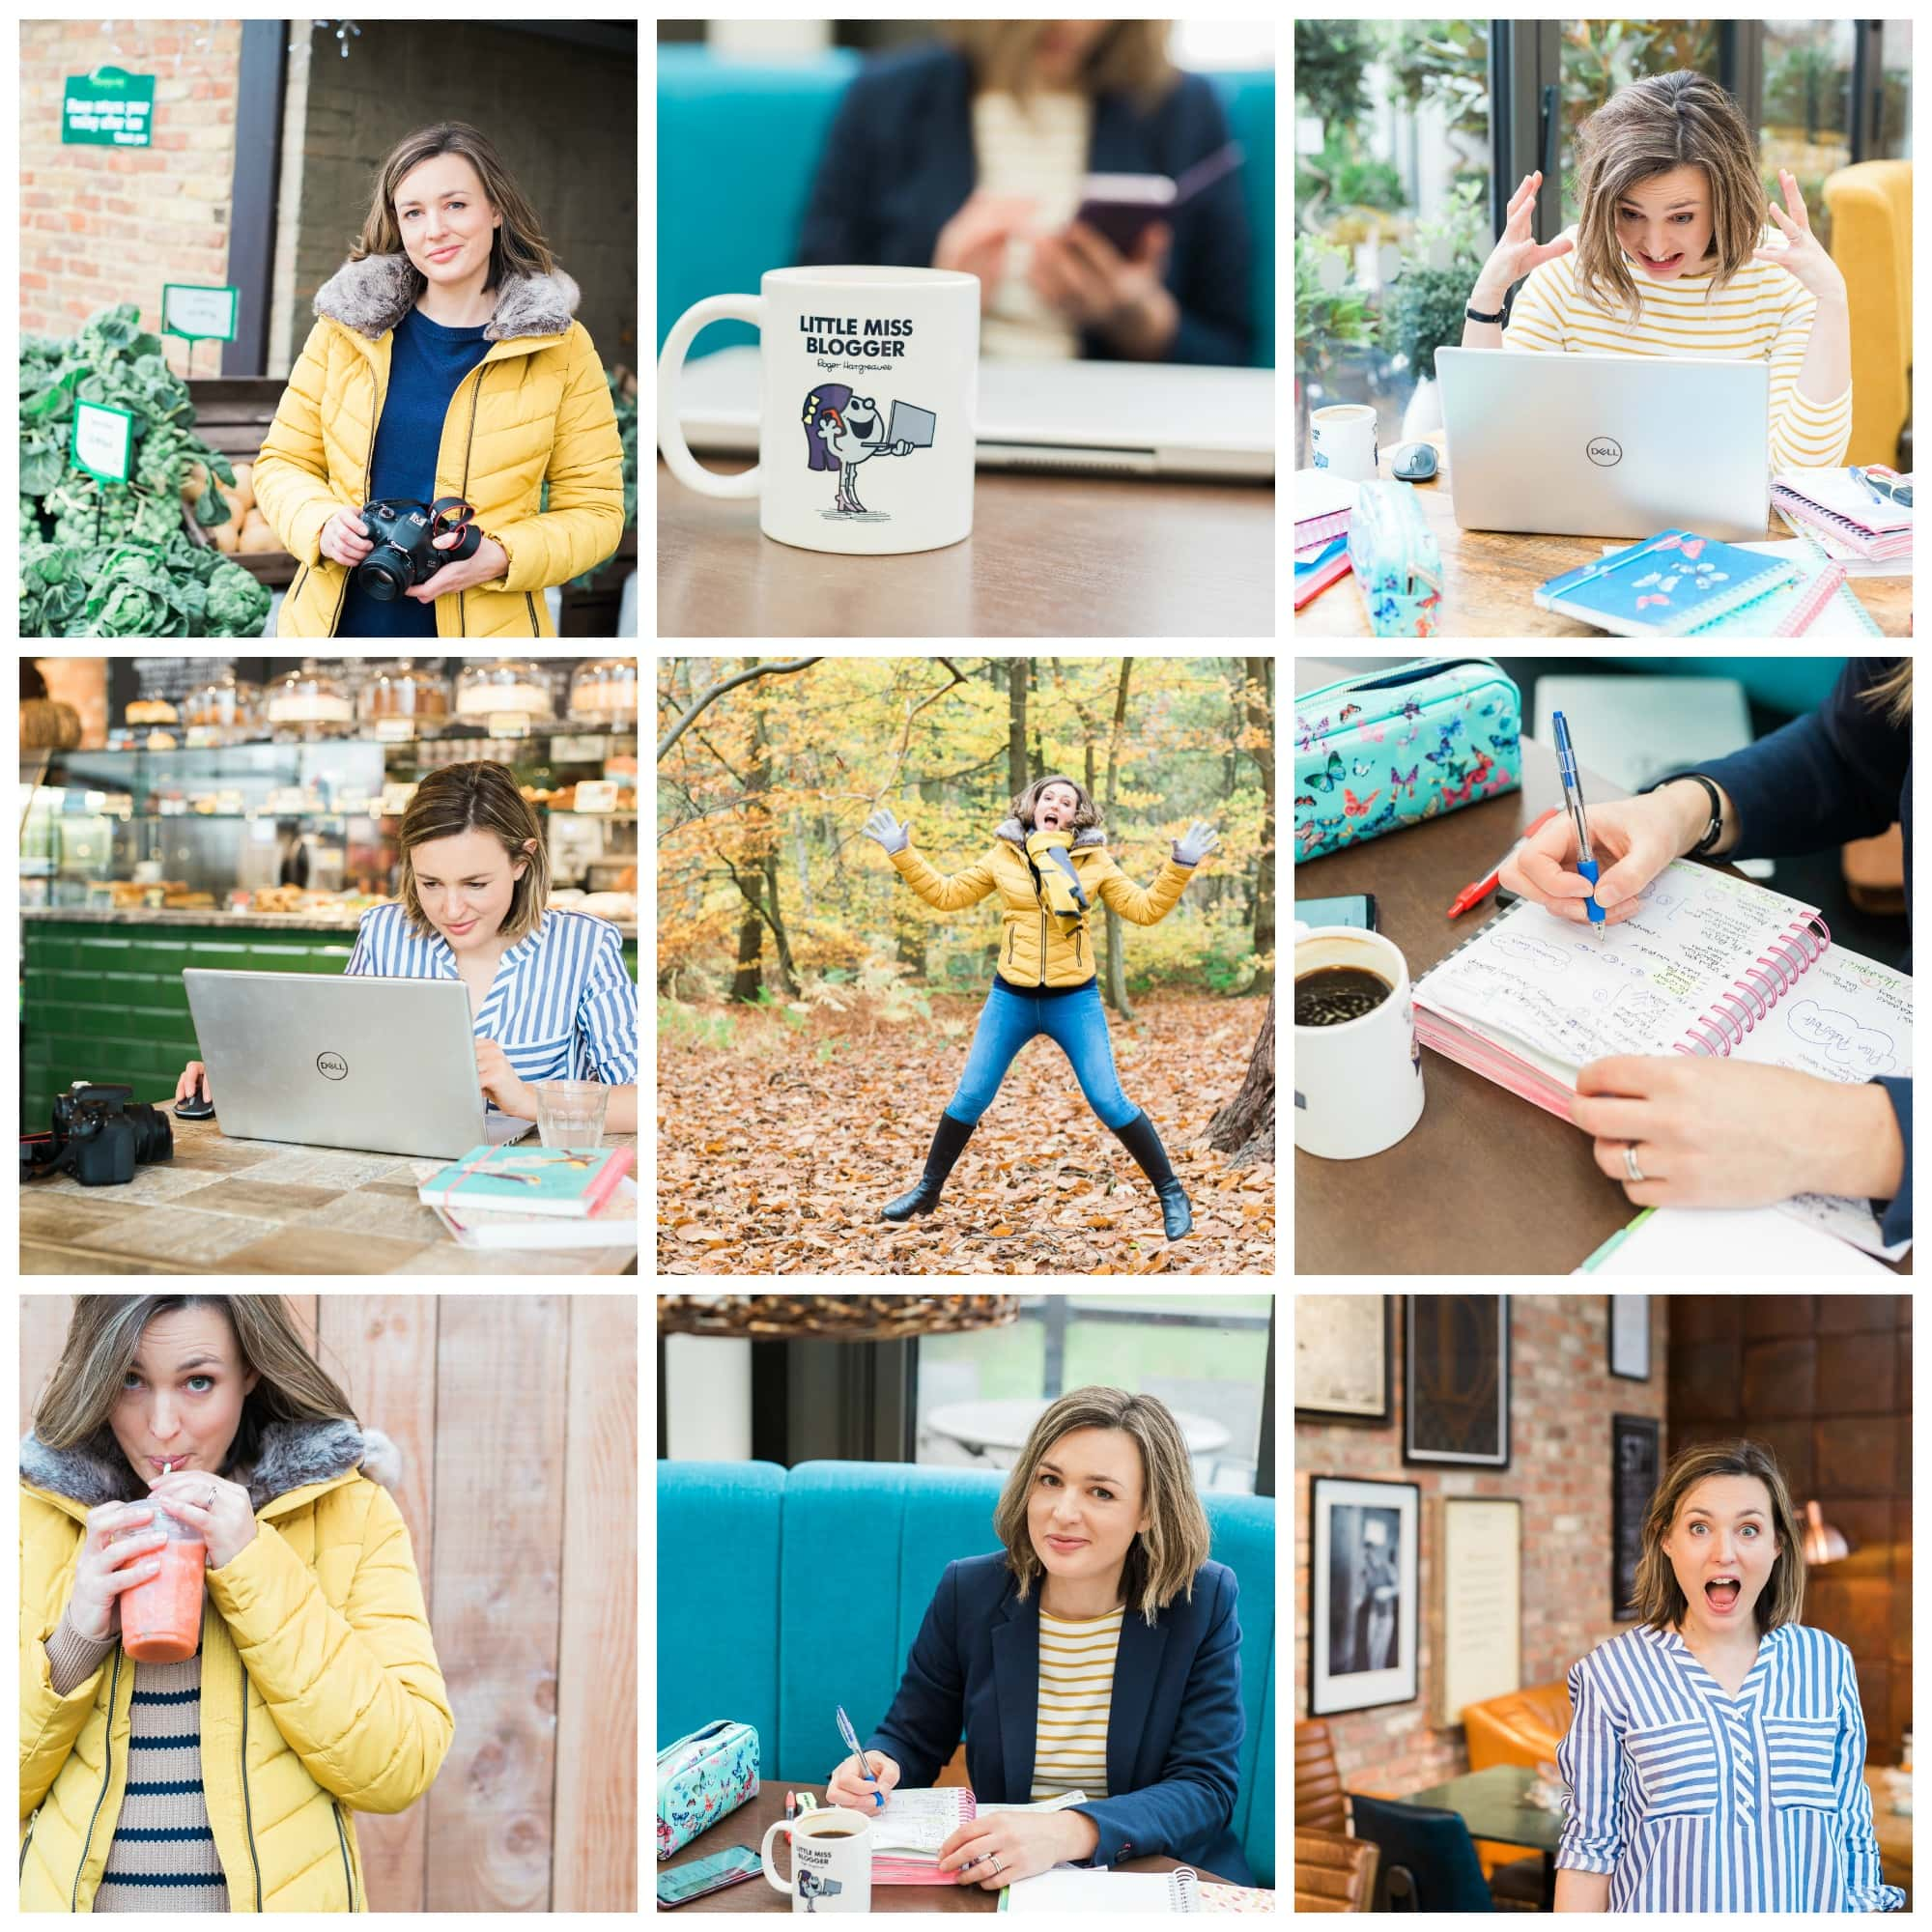 Personal branding for bloggers